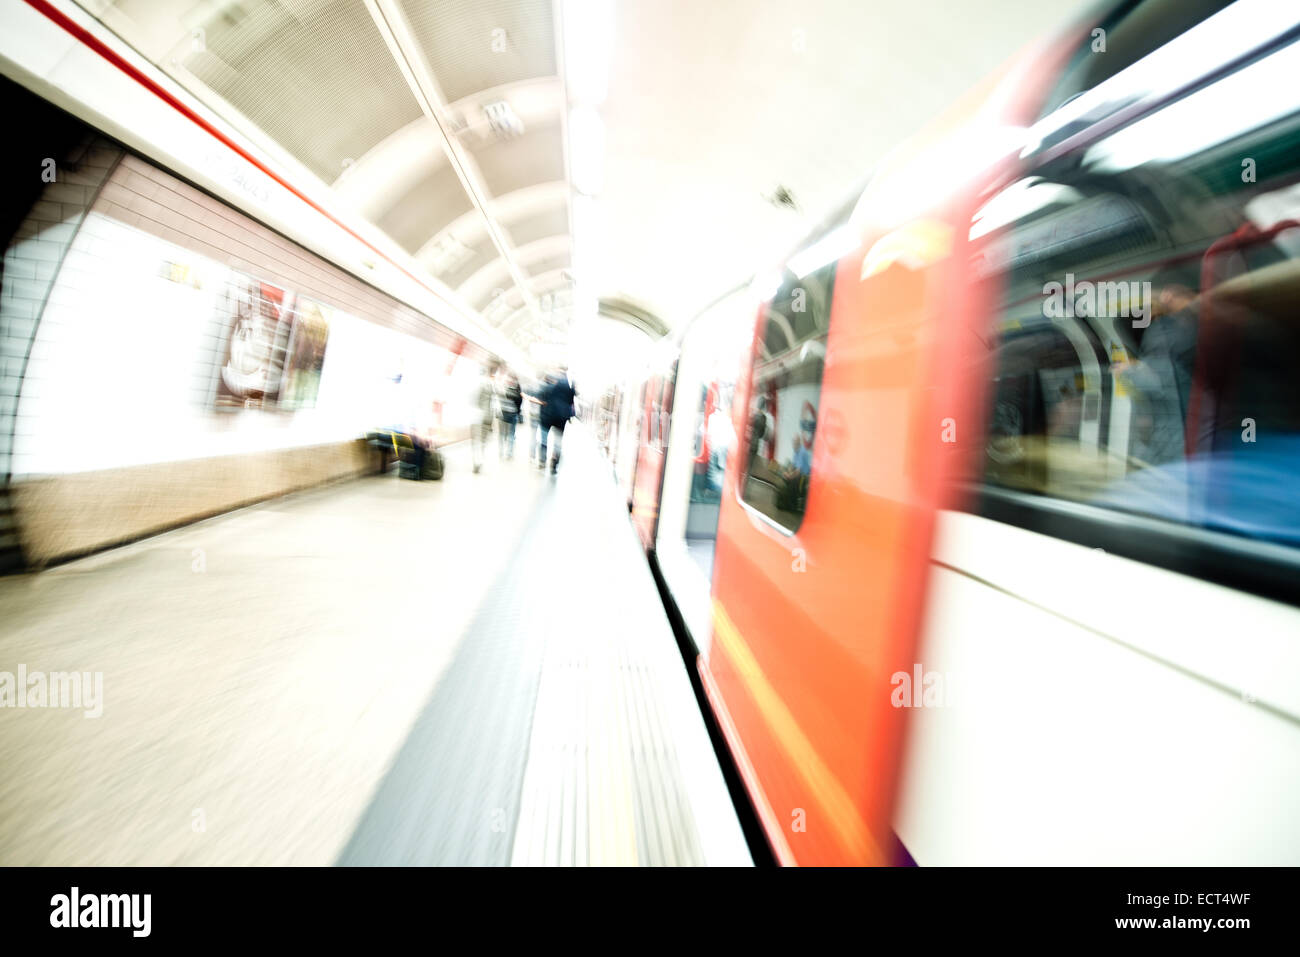 Tube train platform with moving train - Stock Image